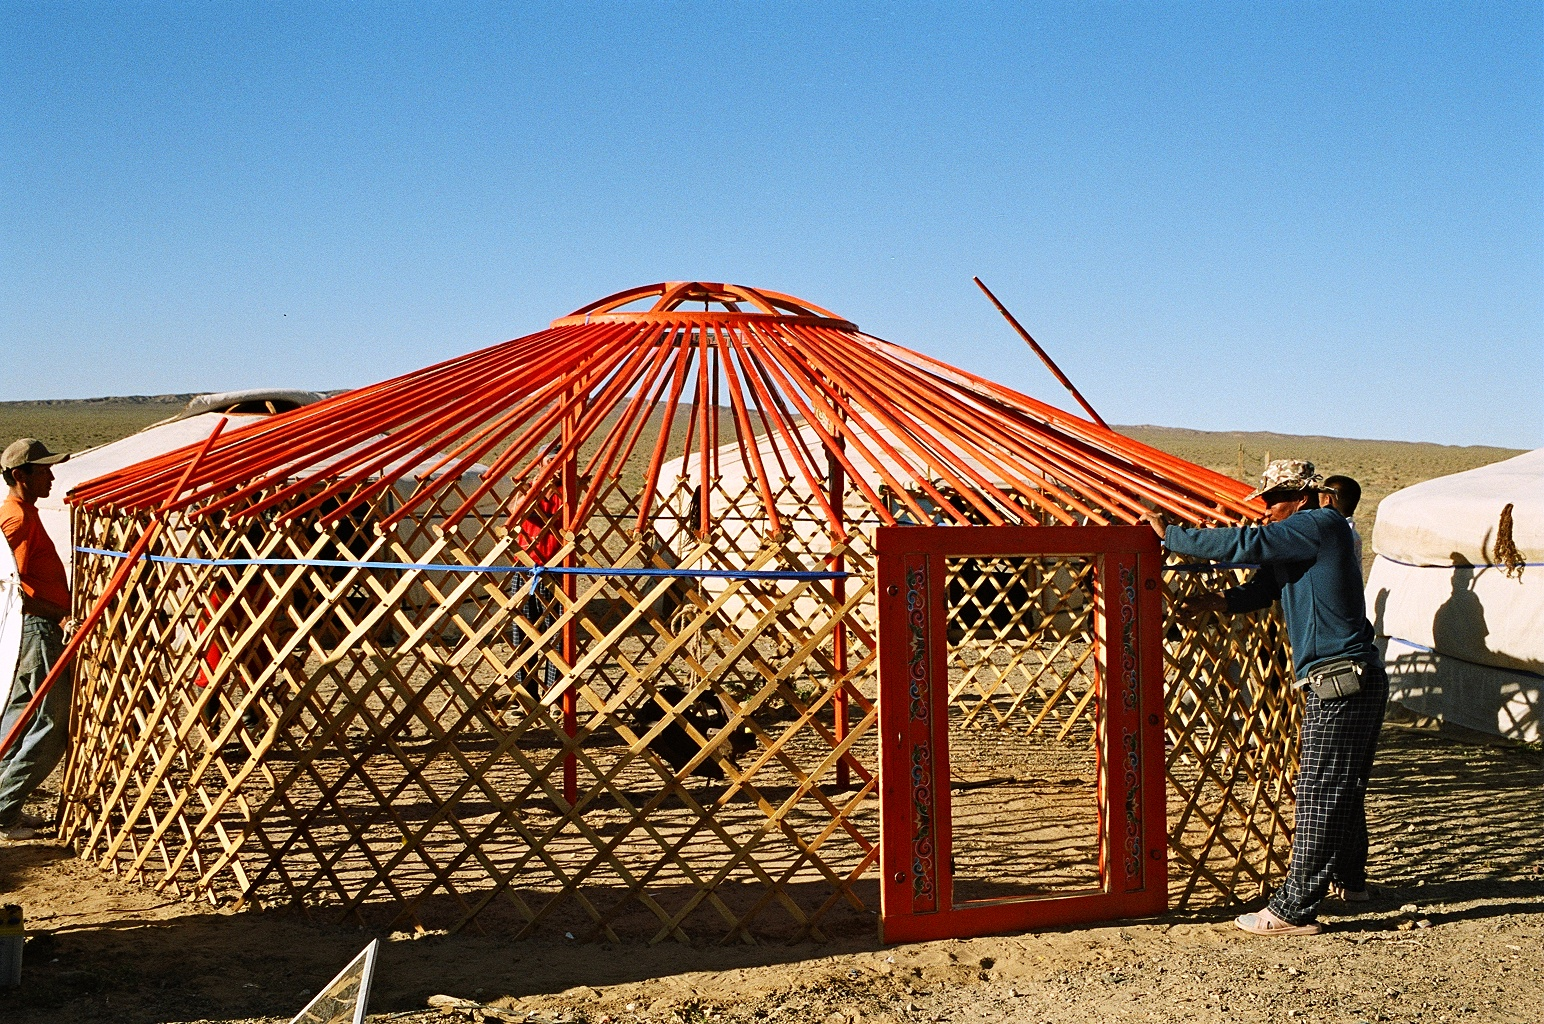 File Yurt Construction 2 Jpg Wikimedia Commons Have you ever dreamed of living in a belle tent or a yurt but were a bit unsure of how to build a platform for it? https commons wikimedia org wiki file yurt construction 2 jpg